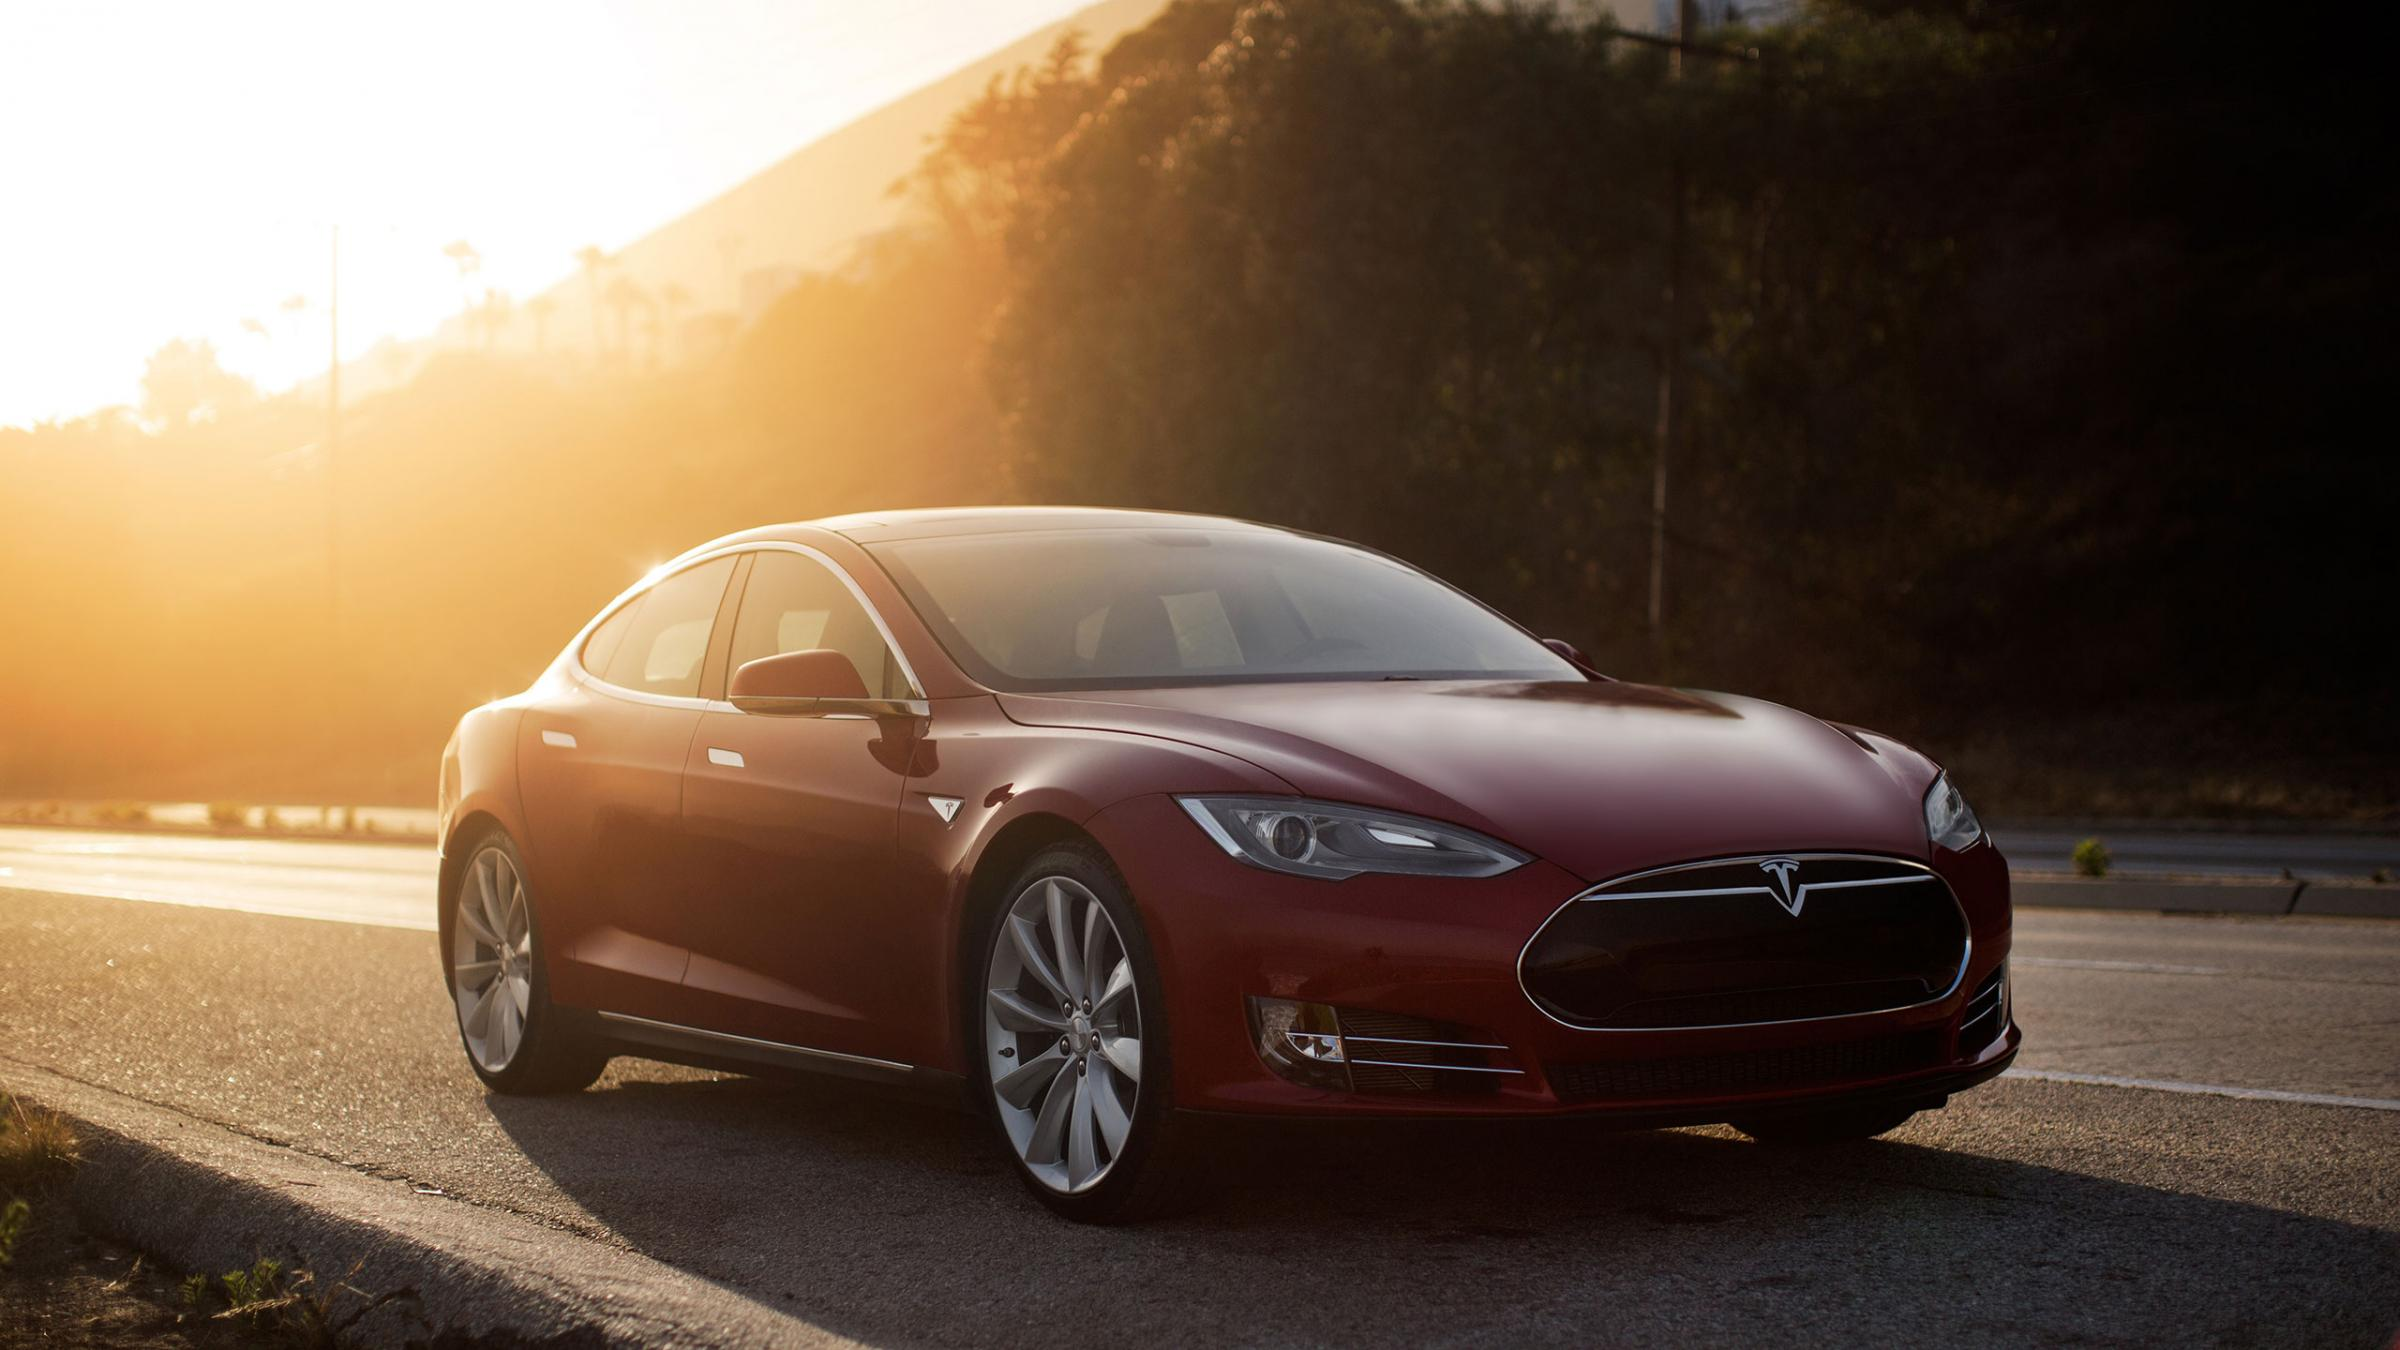 2014 Tesla Model S Review, Ratings, Specs, Prices, and ...